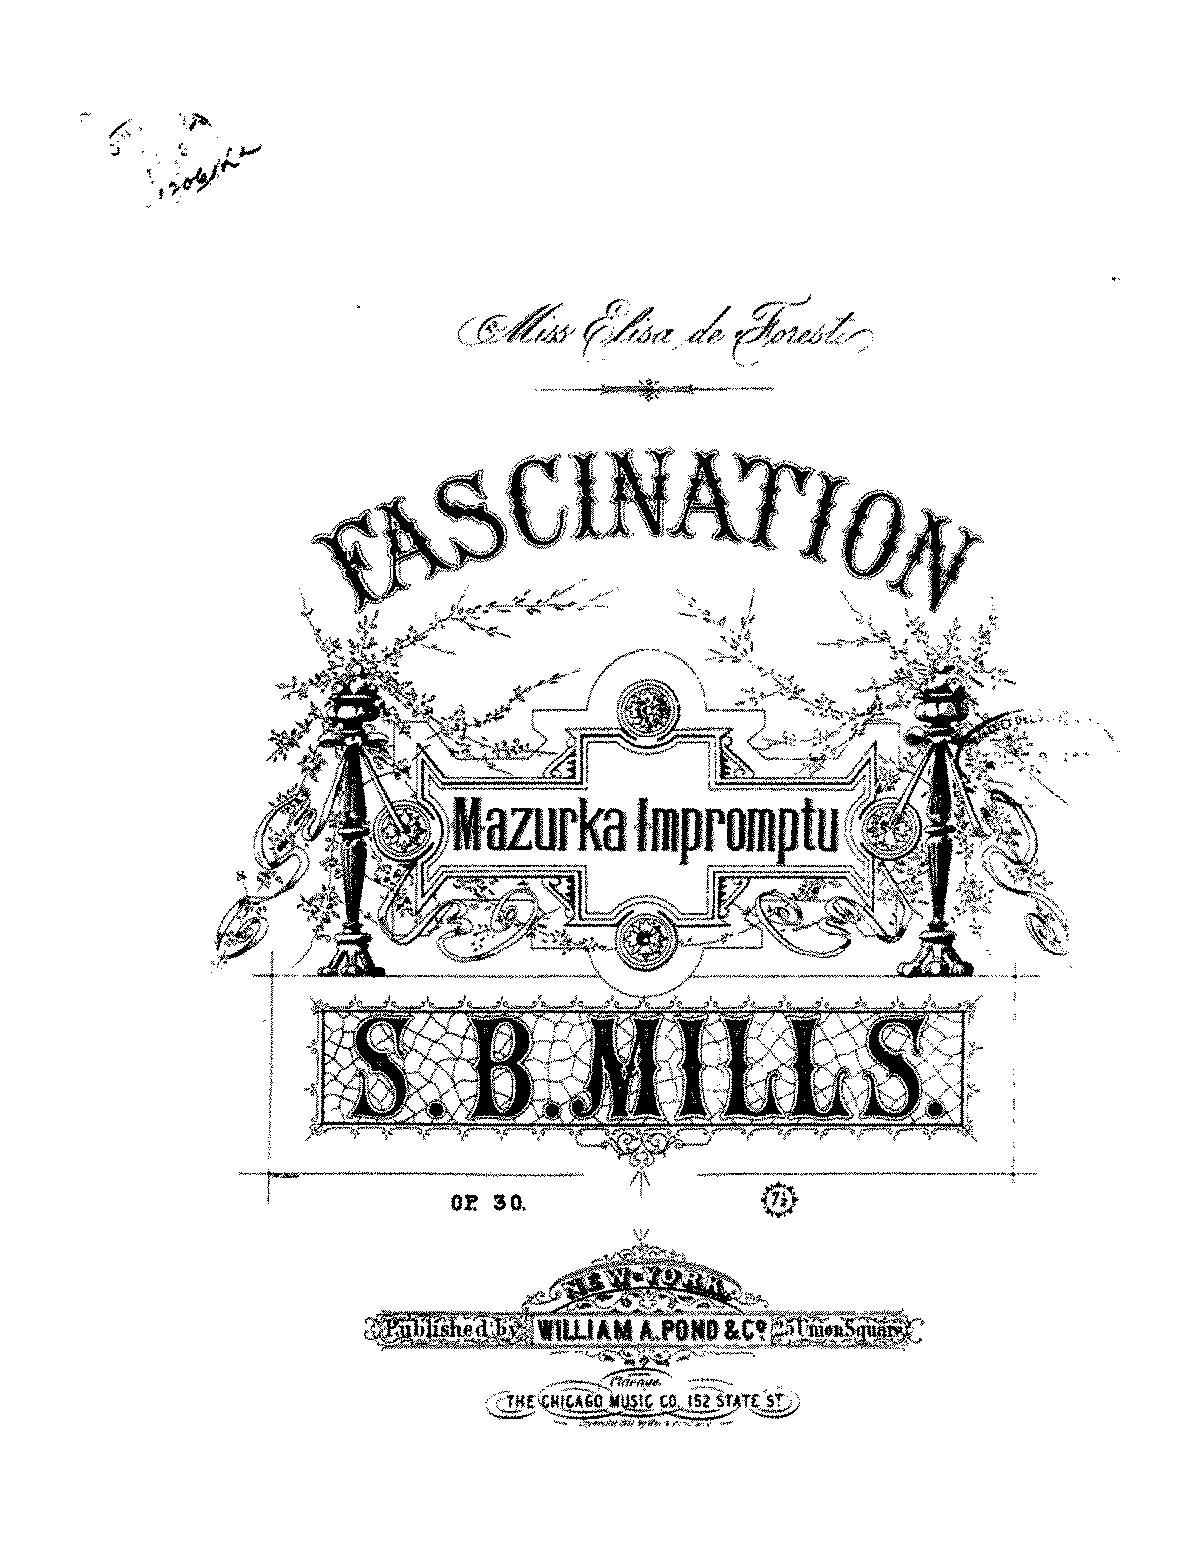 PMLP235155-SBMillsOp30Fascination.pdf